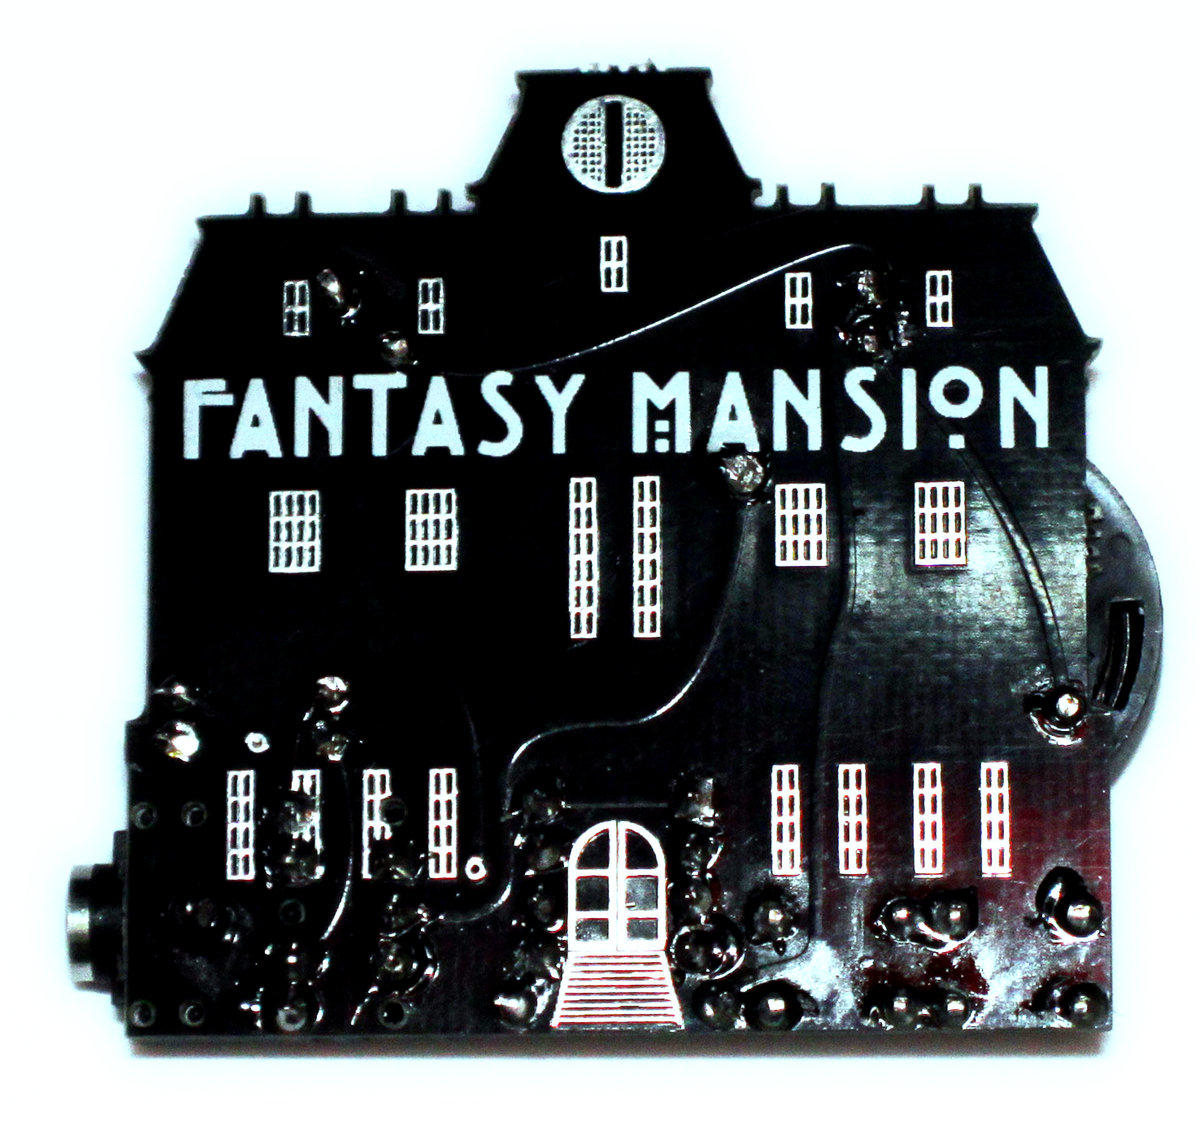 Fantasy Mansion Metronomicon Audio Printed Circuit Board Timeline My Version Of A Working Computer That Generates Polyphonic Melodies And Beats In Real Time While Also Serving As Programmable 32 Step Sequencer Glitch Fx